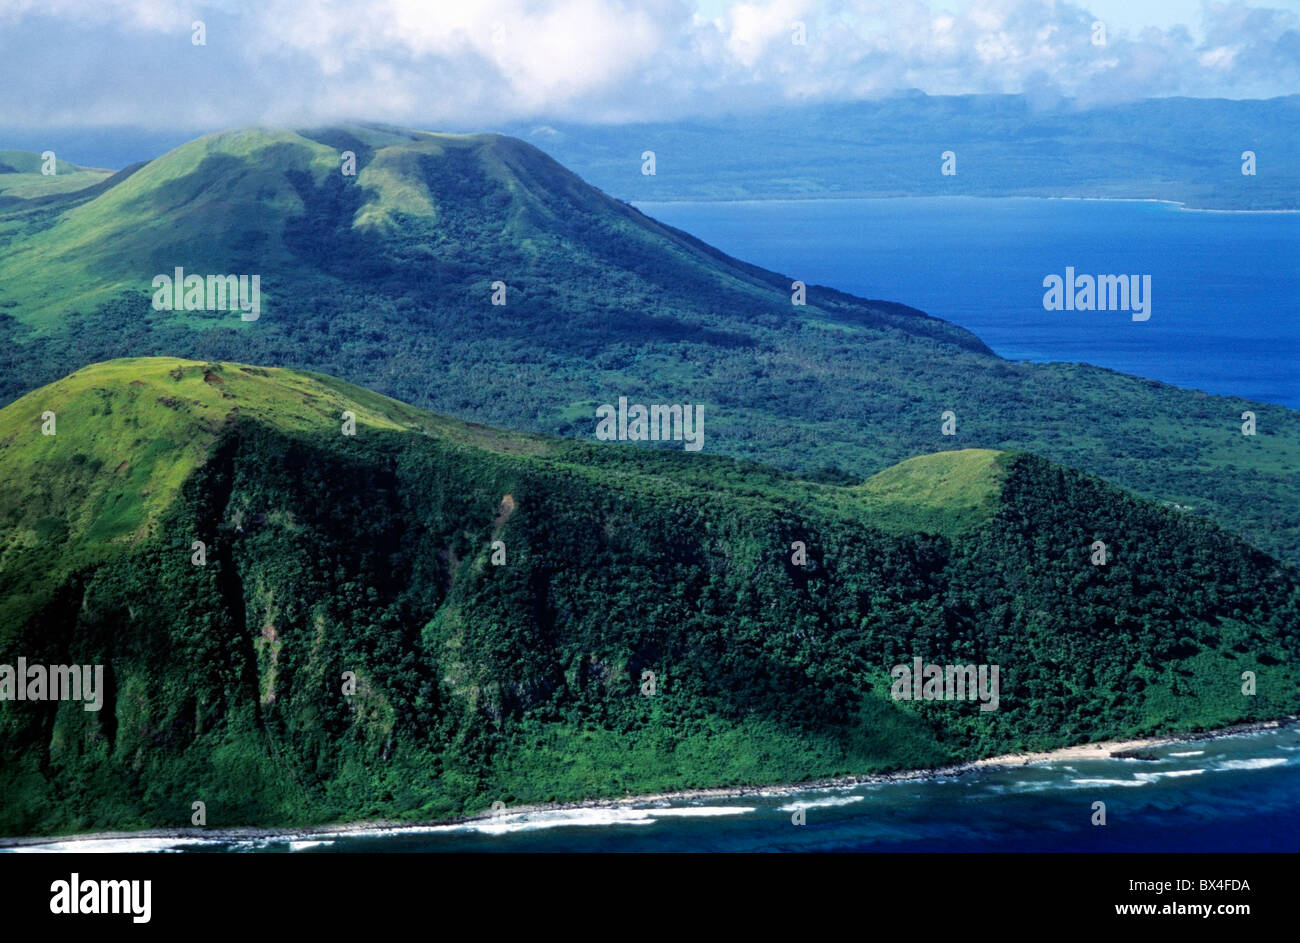 Vanuatu Islands aerial - Volcanoes on Nguna island, close to the island of Efate, Vanuatu in the South Pacific Ocean. - Stock Image